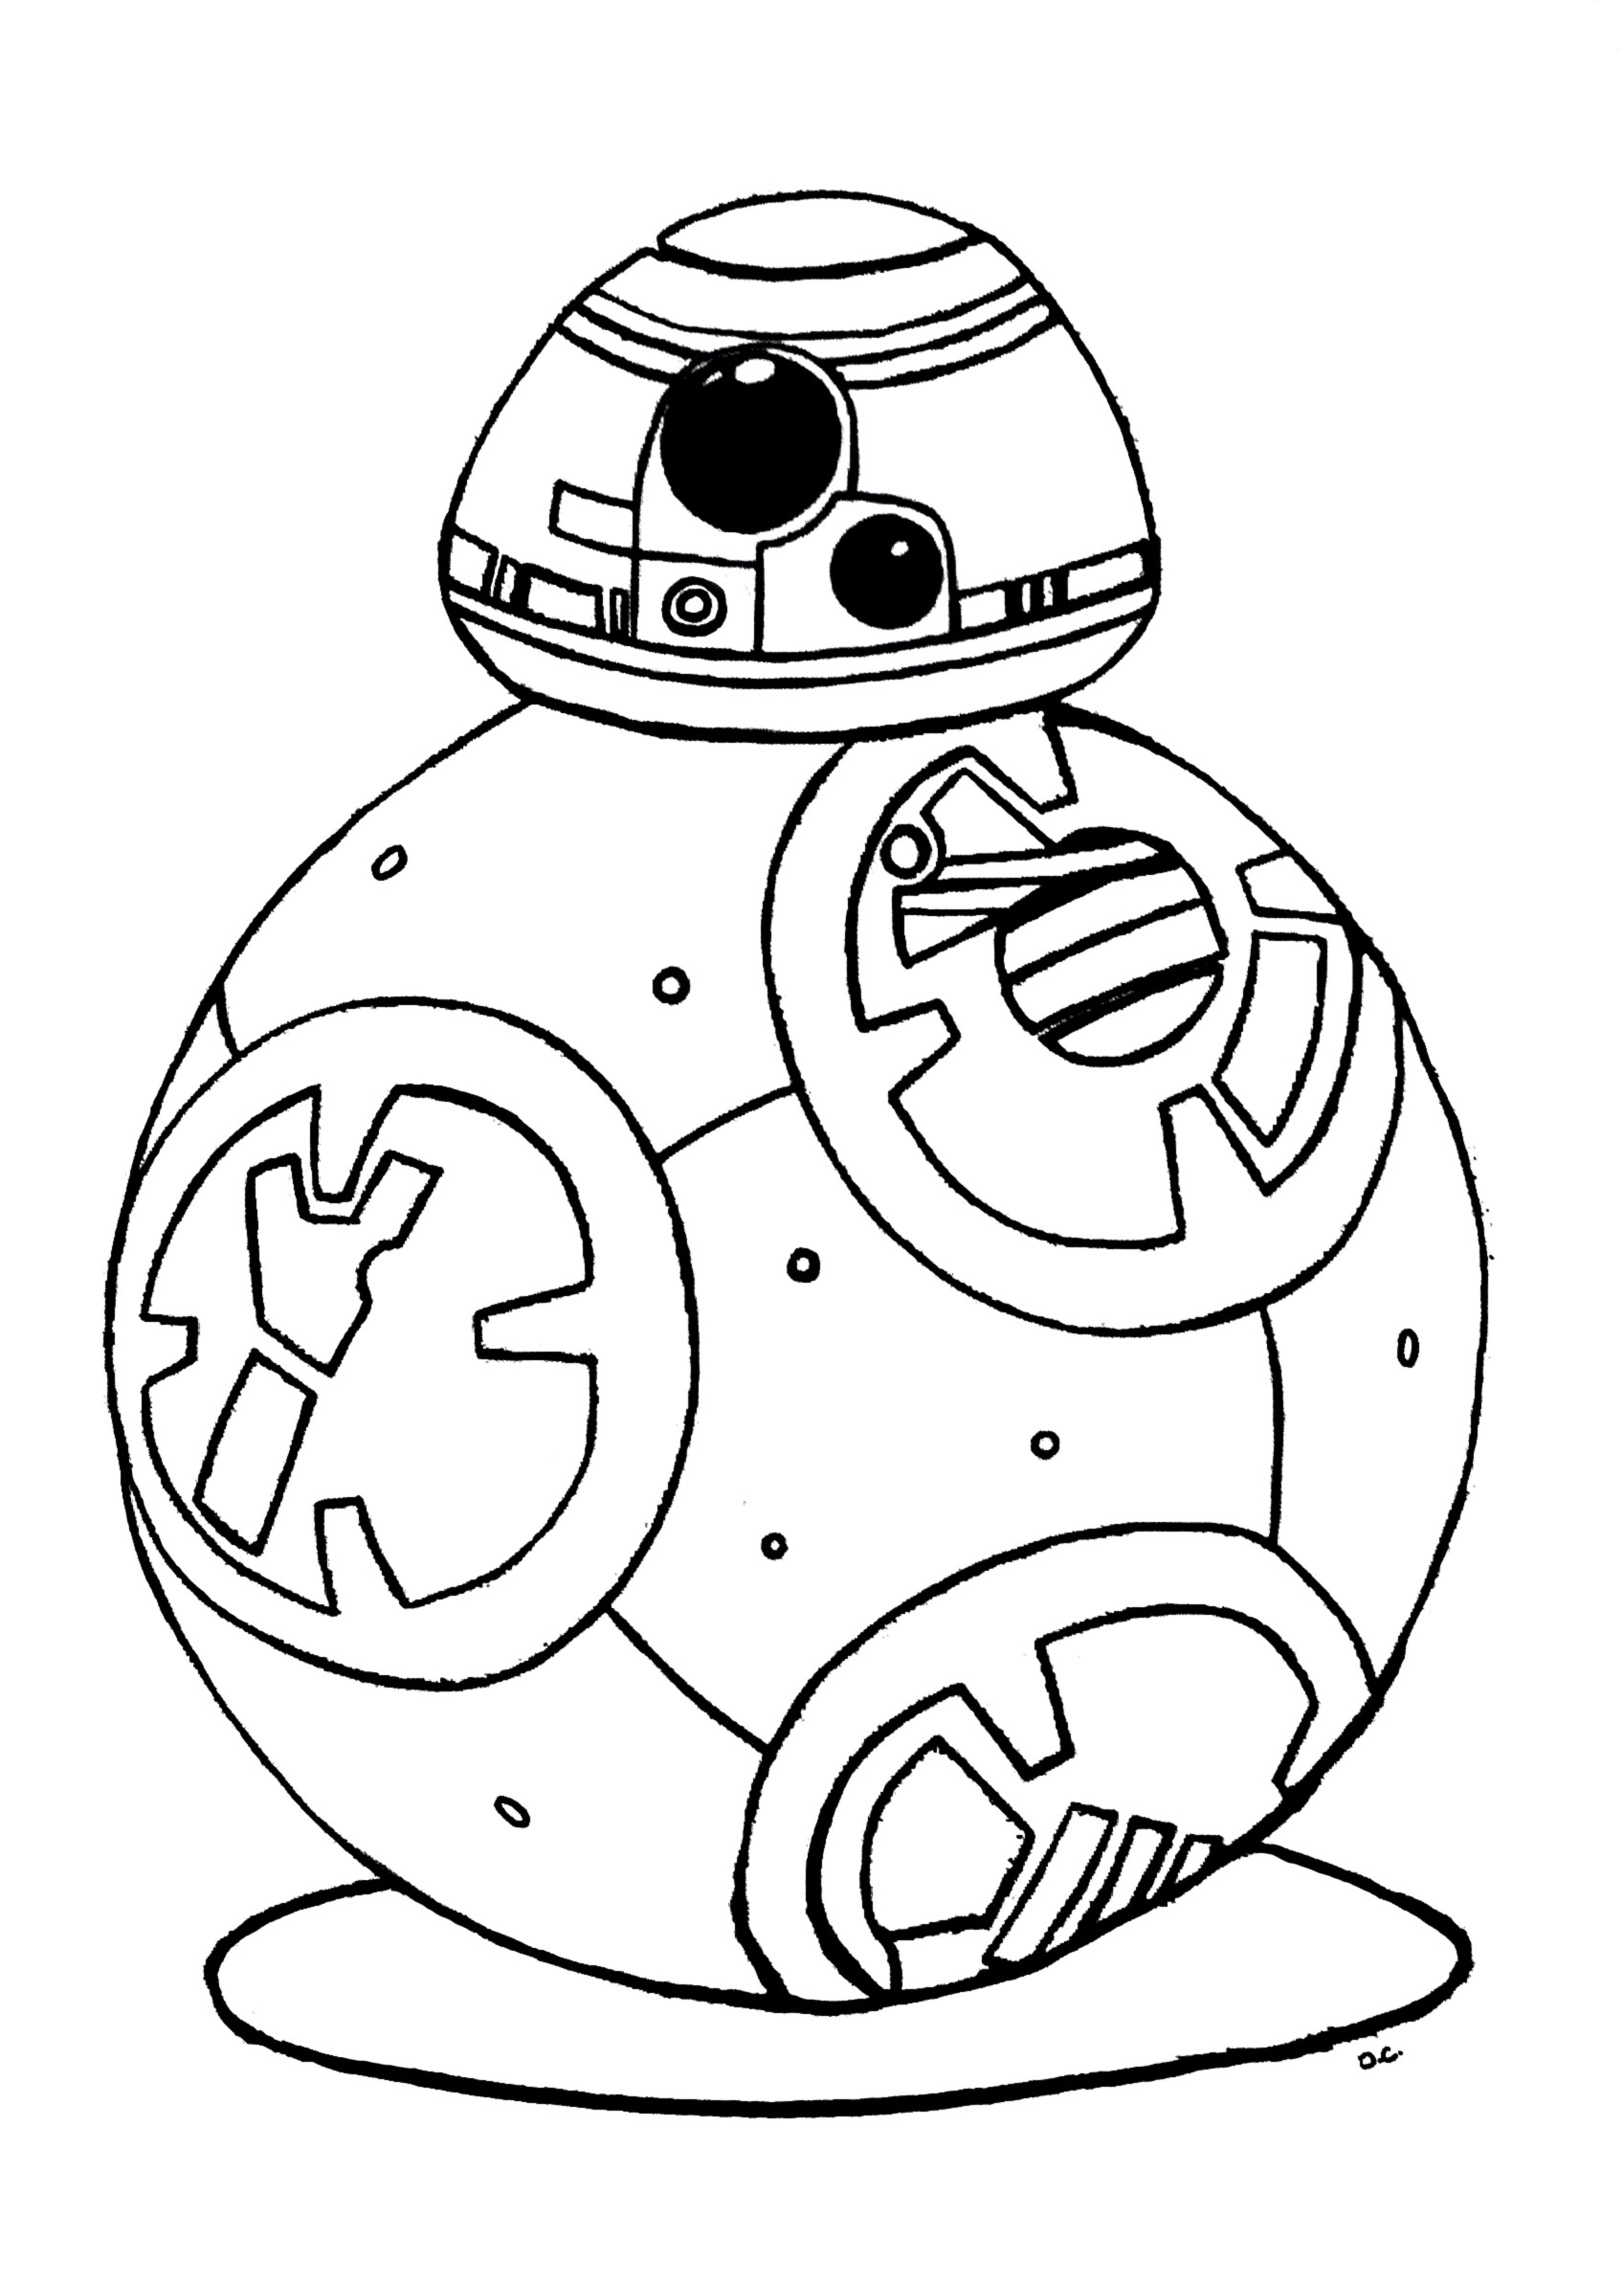 star wars pictures to color free printable star wars coloring pages free printable star wars to pictures color